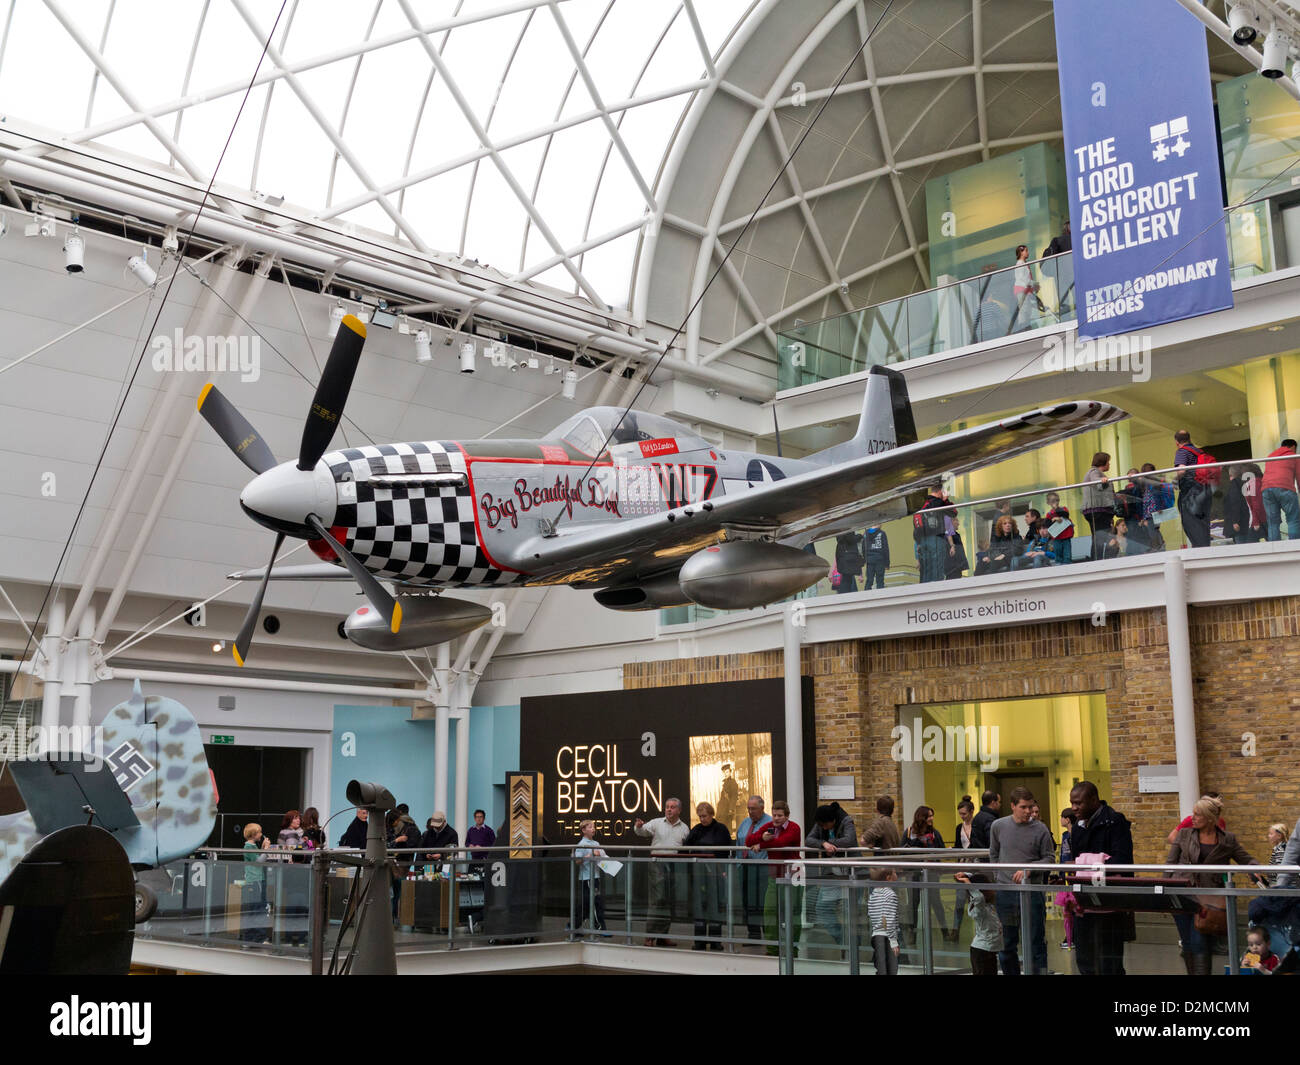 One of the planes on display at the Imperial War Museum, London - Stock Image